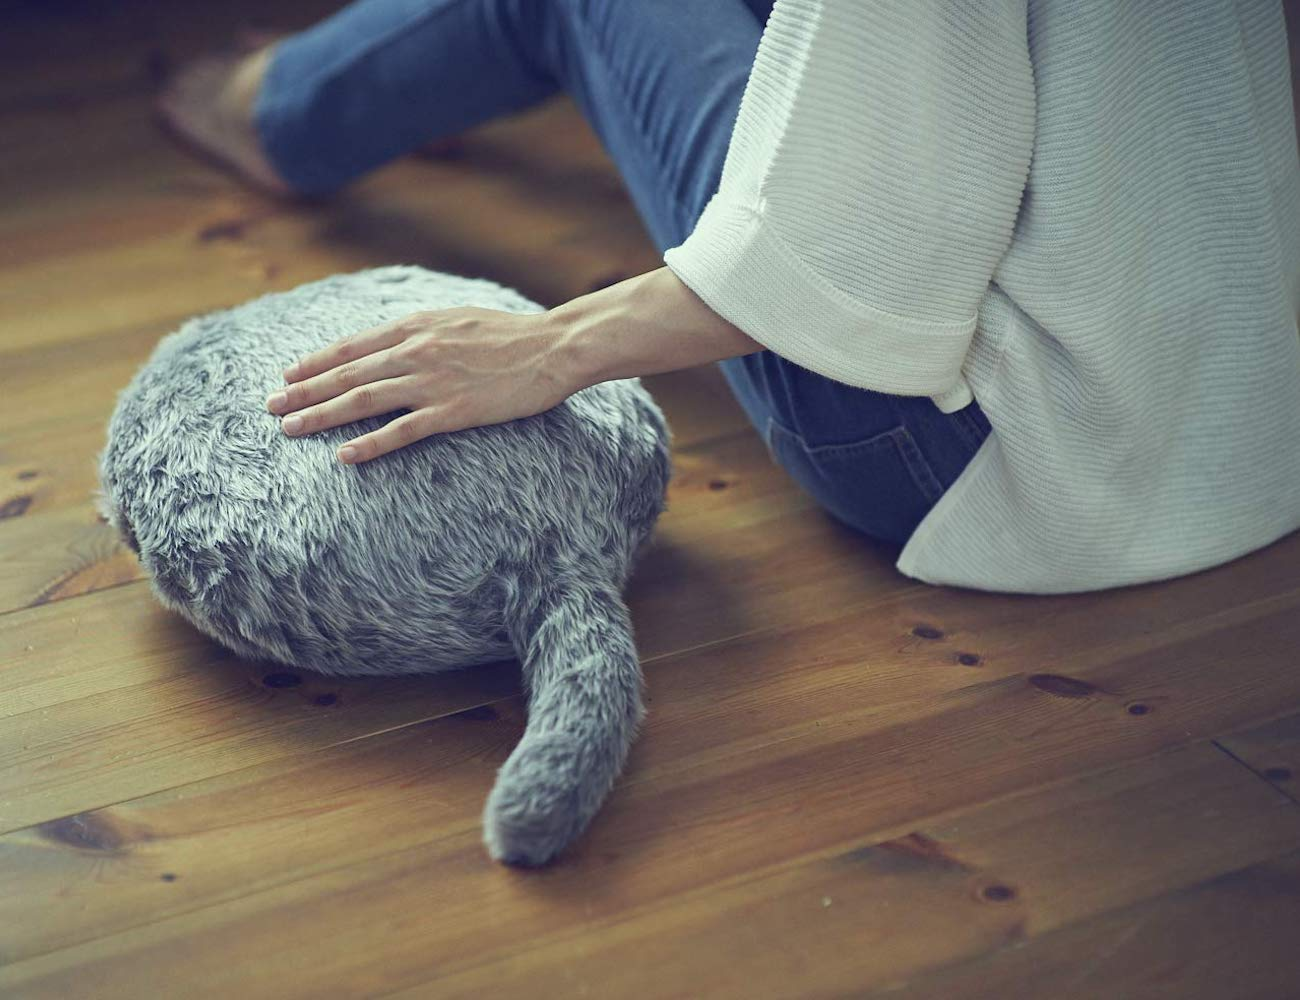 Qoobo Therapeutic Robot Pillow has a comforting, furry coat and tail